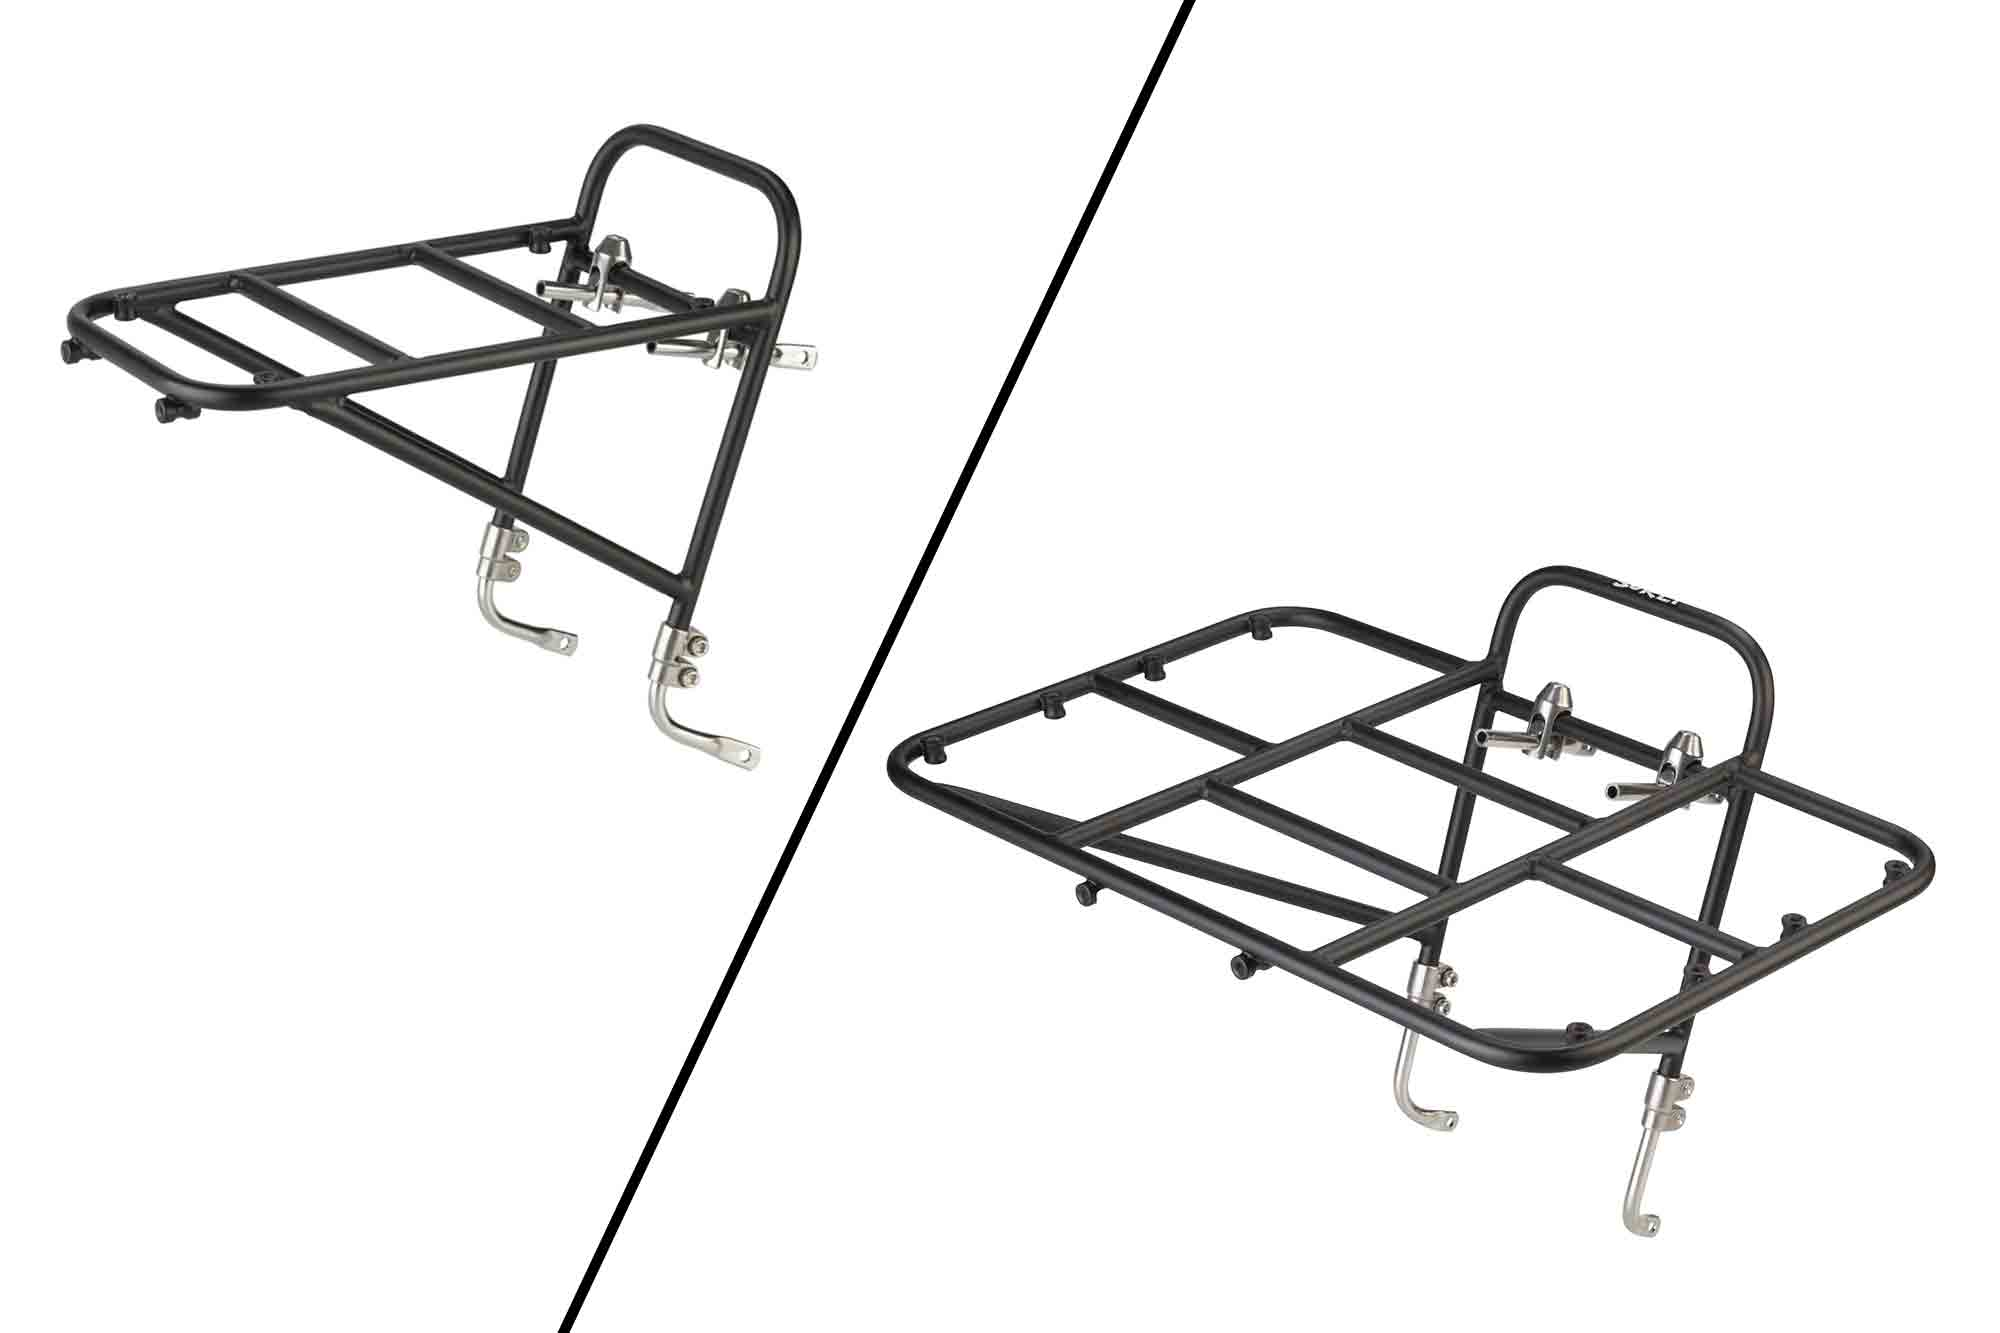 Right angled profile view of Surly 8 and 12 Rat Pack bike gear rack, black, separated with an angled line